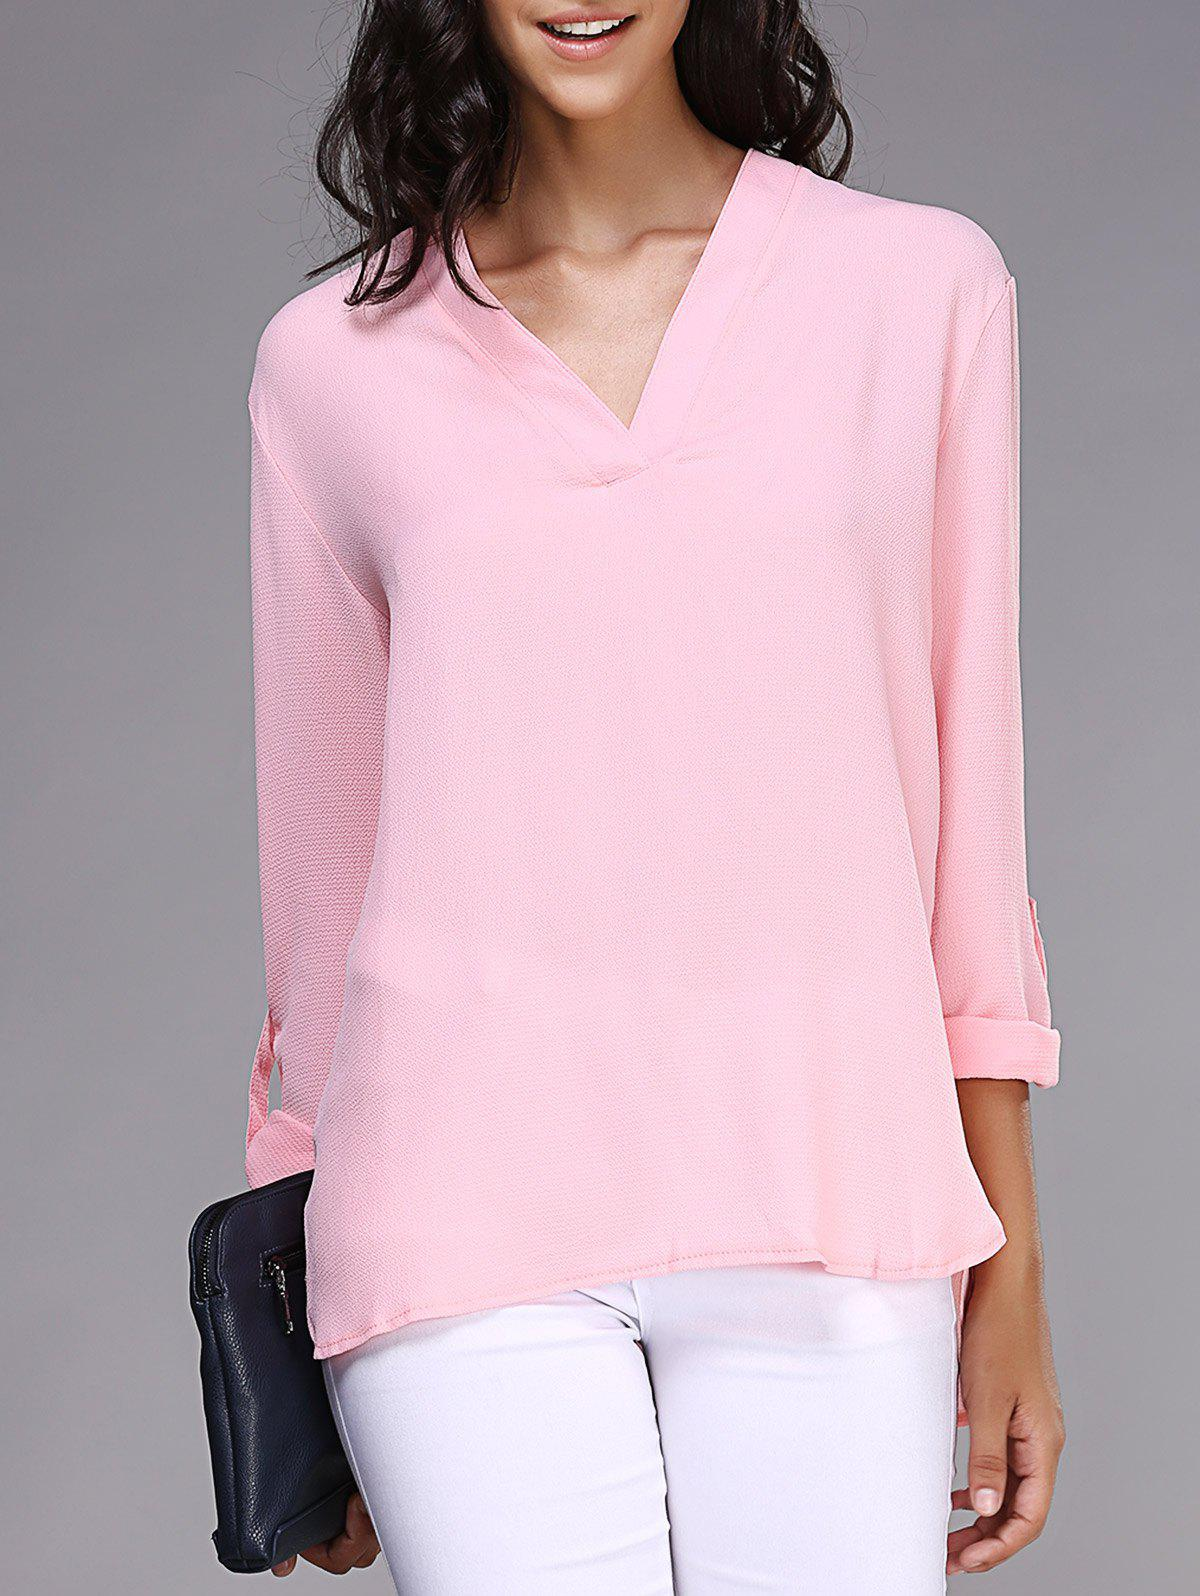 Stylish V-Neck Long Sleeve Loose Pink Chiffon Blouse For Women - PINK XL